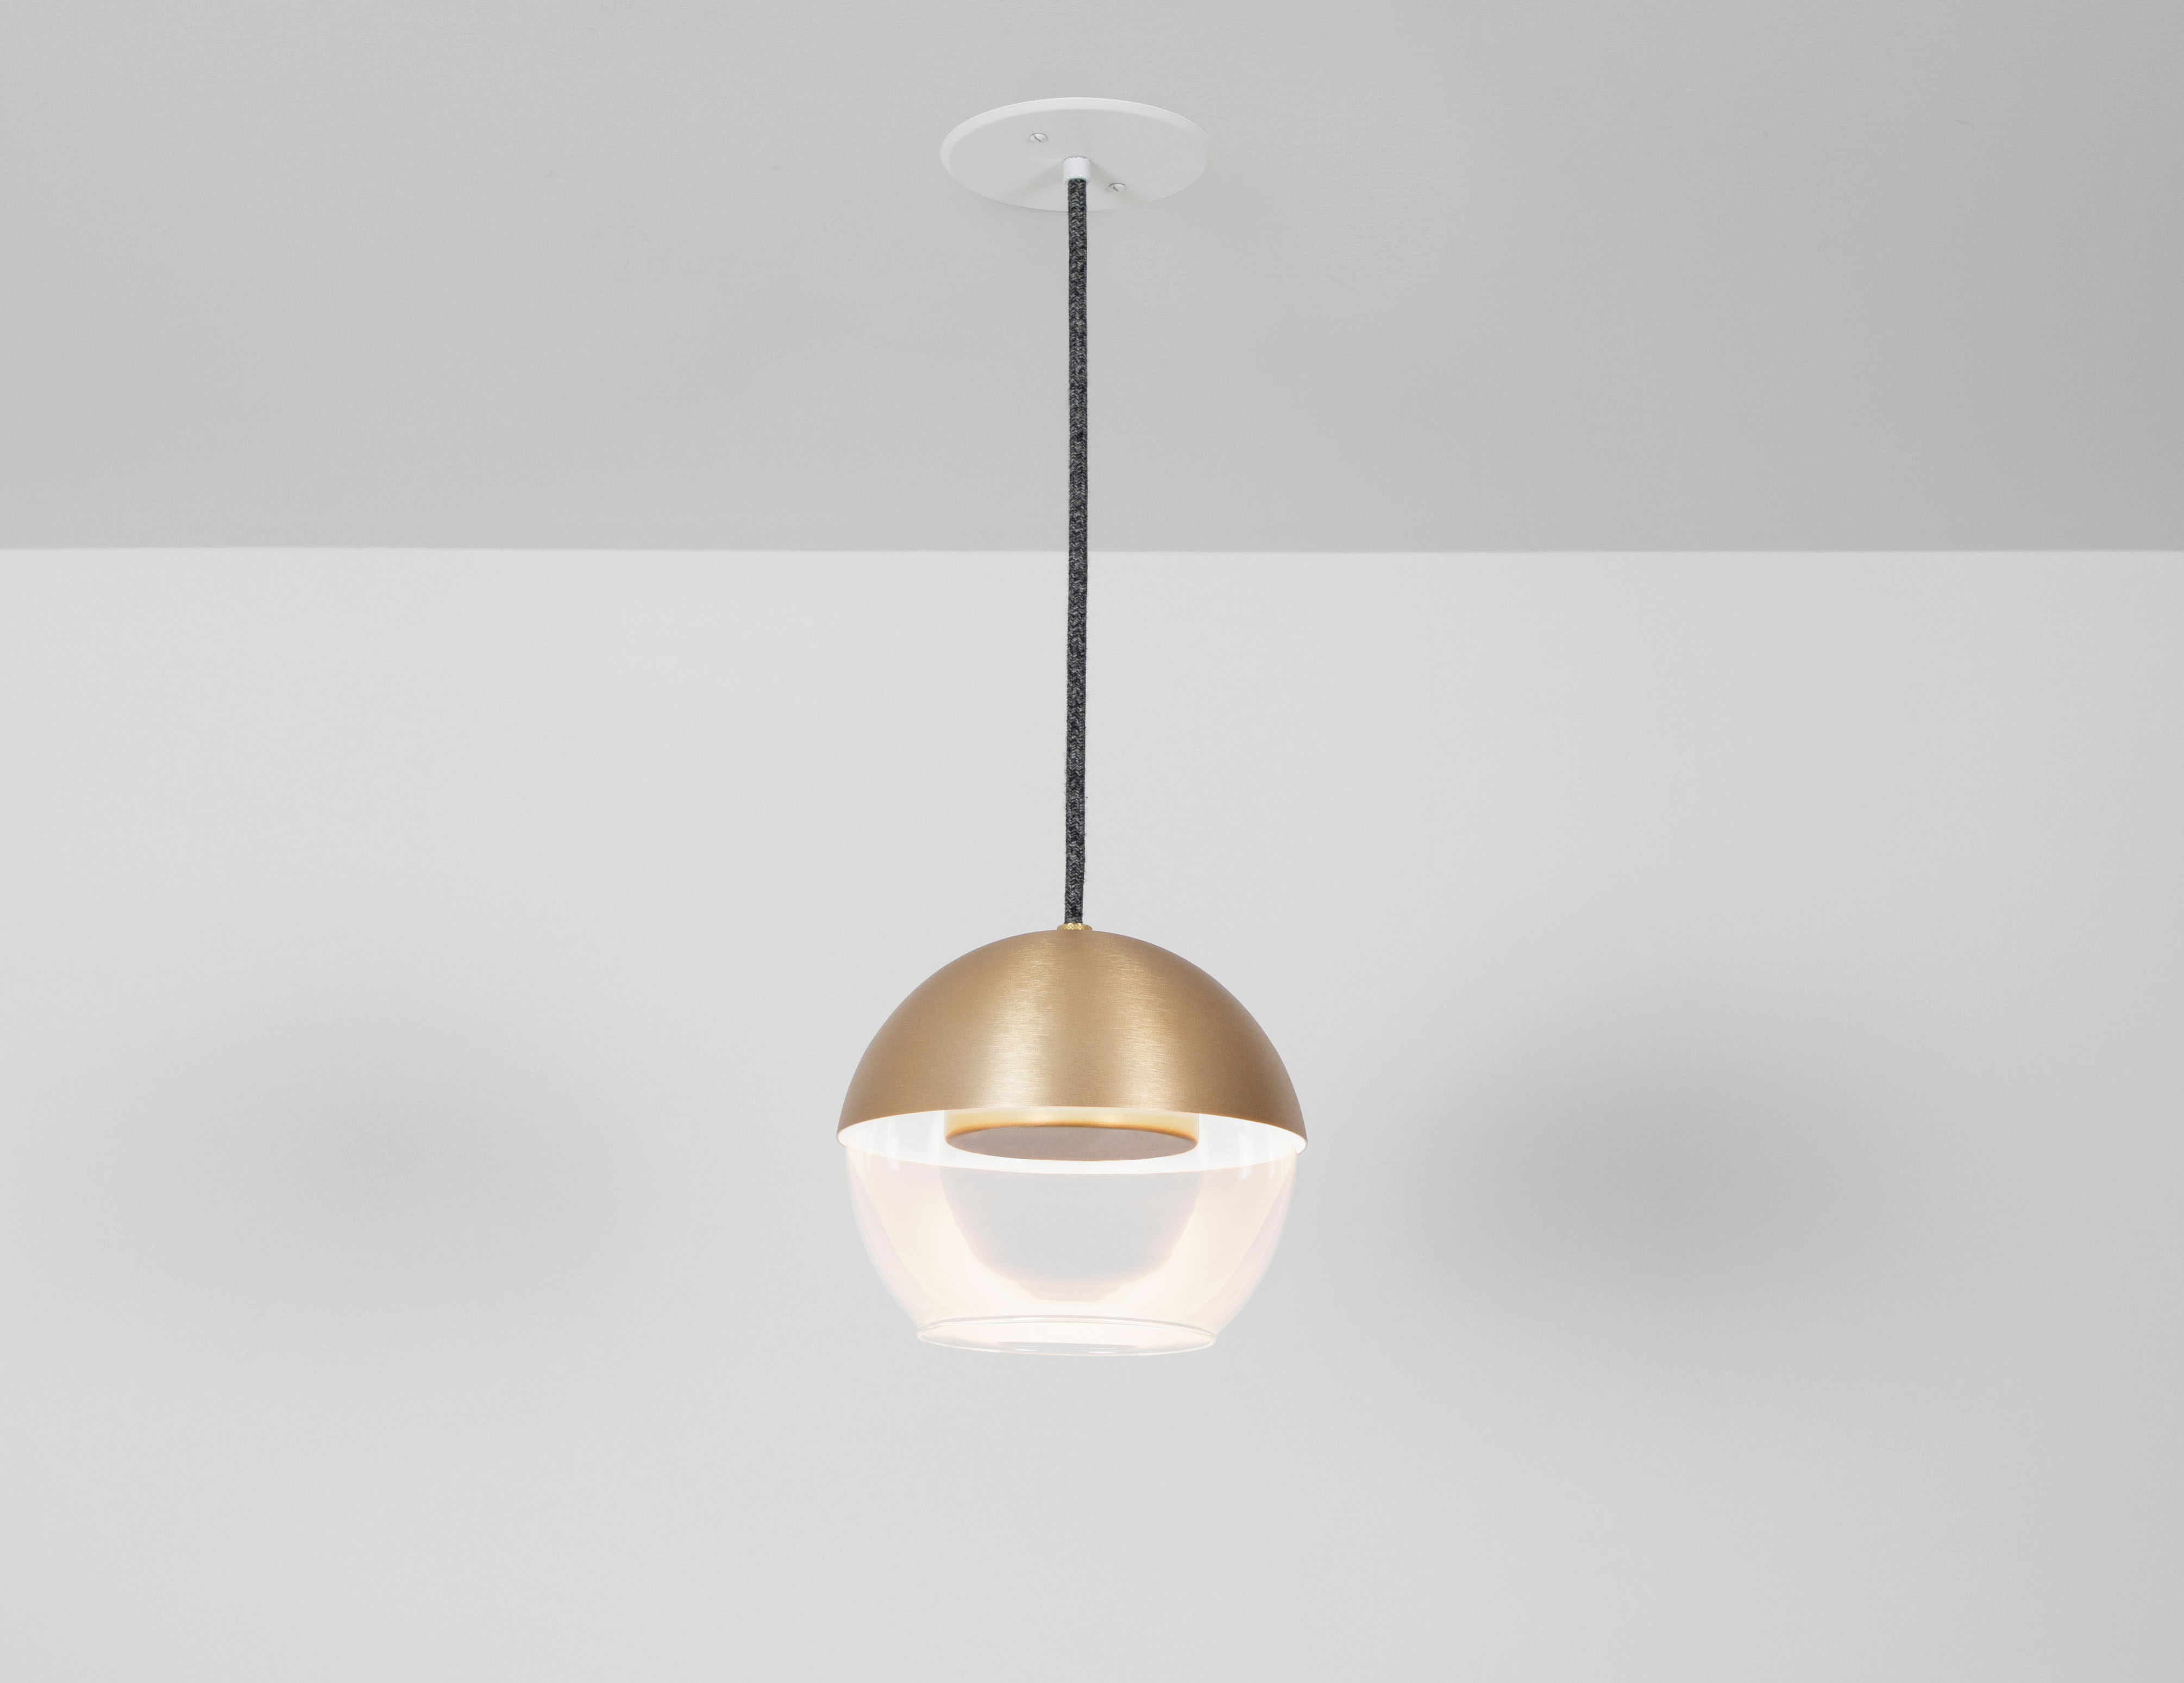 Muse glass globe pendant with LED